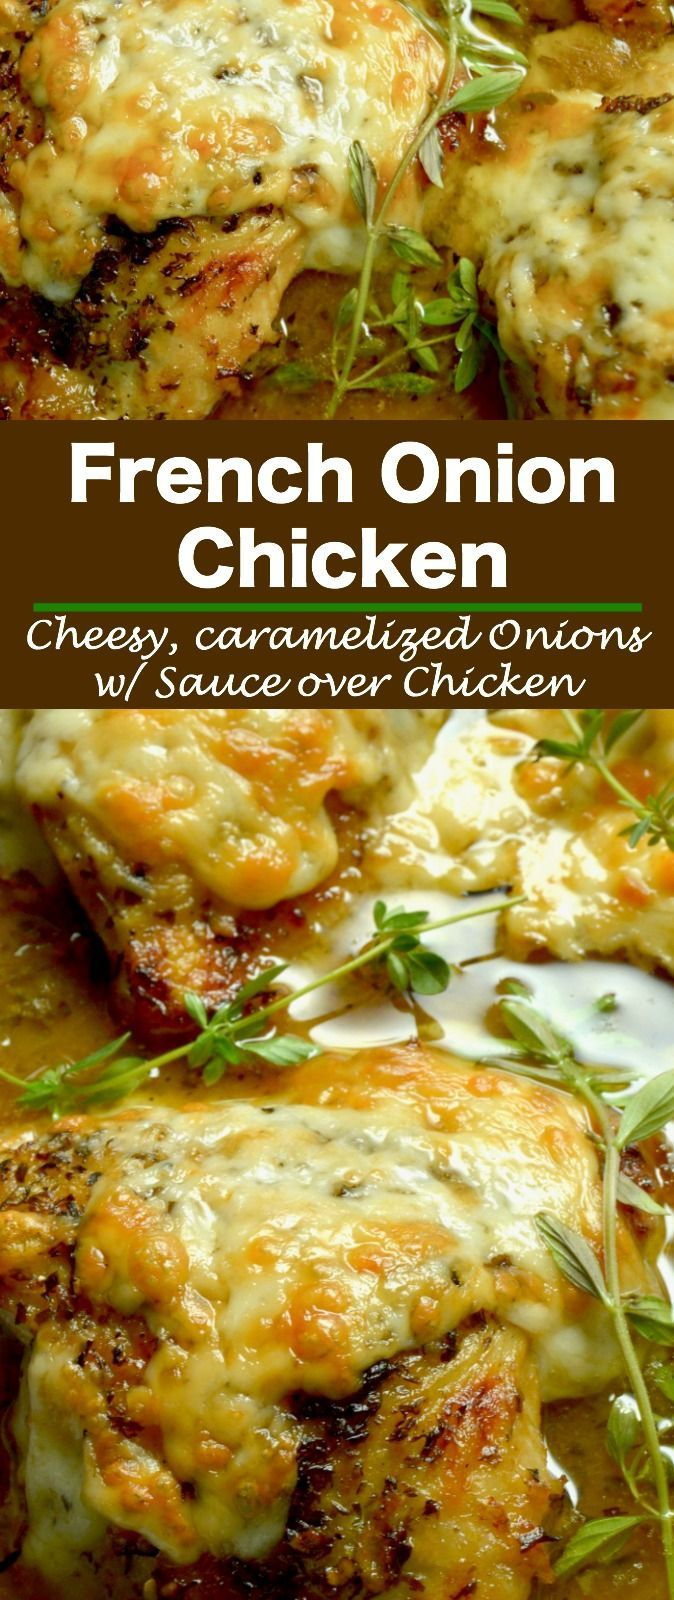 French Onion Chicken: caramelized onions under melted gooey cheese all atop braised tender chicken with a French onion style sauce.  An excellent option for dinner with friends, but your family will want it for a weeknight dinner option! #chicken #weeknightdinner #comfortfood #casualfood #casualrecipe